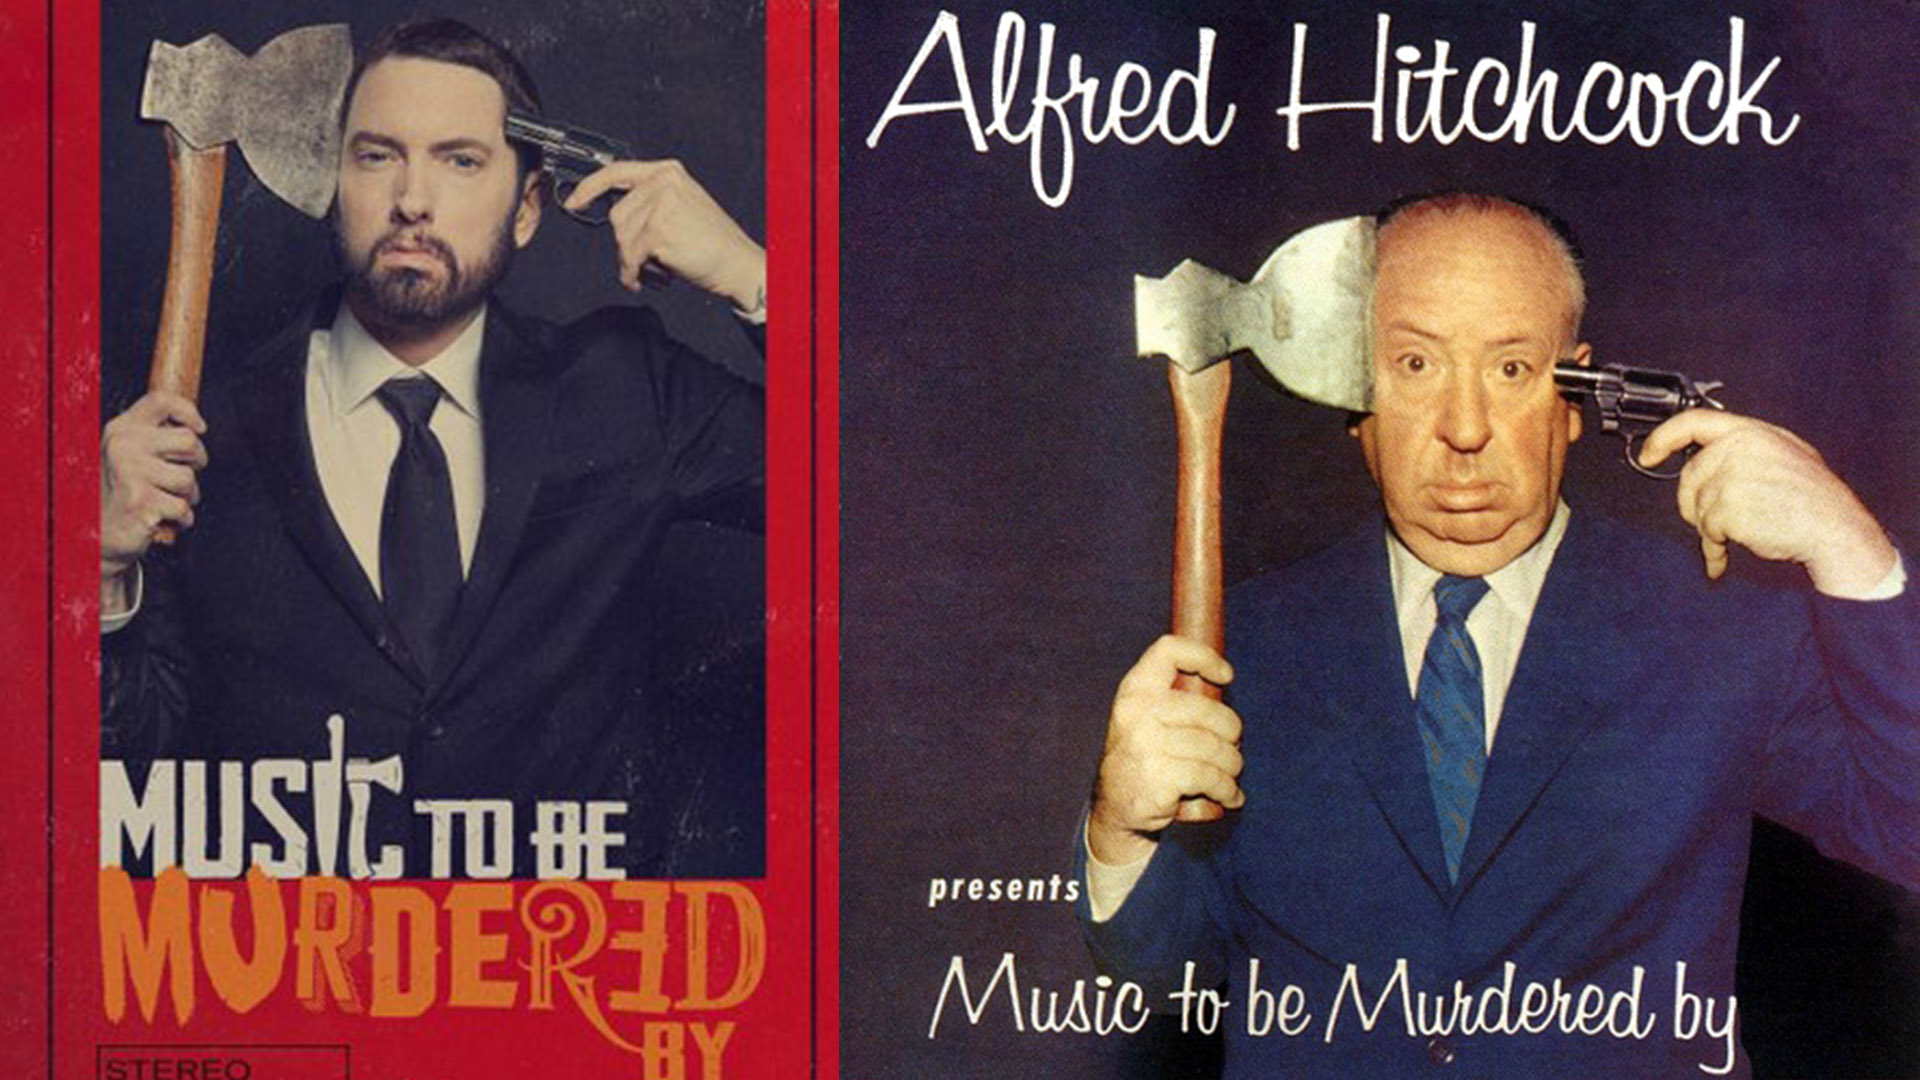 Eminem Pays Homage To Alfred Hitchcock On His Latest Album Cover